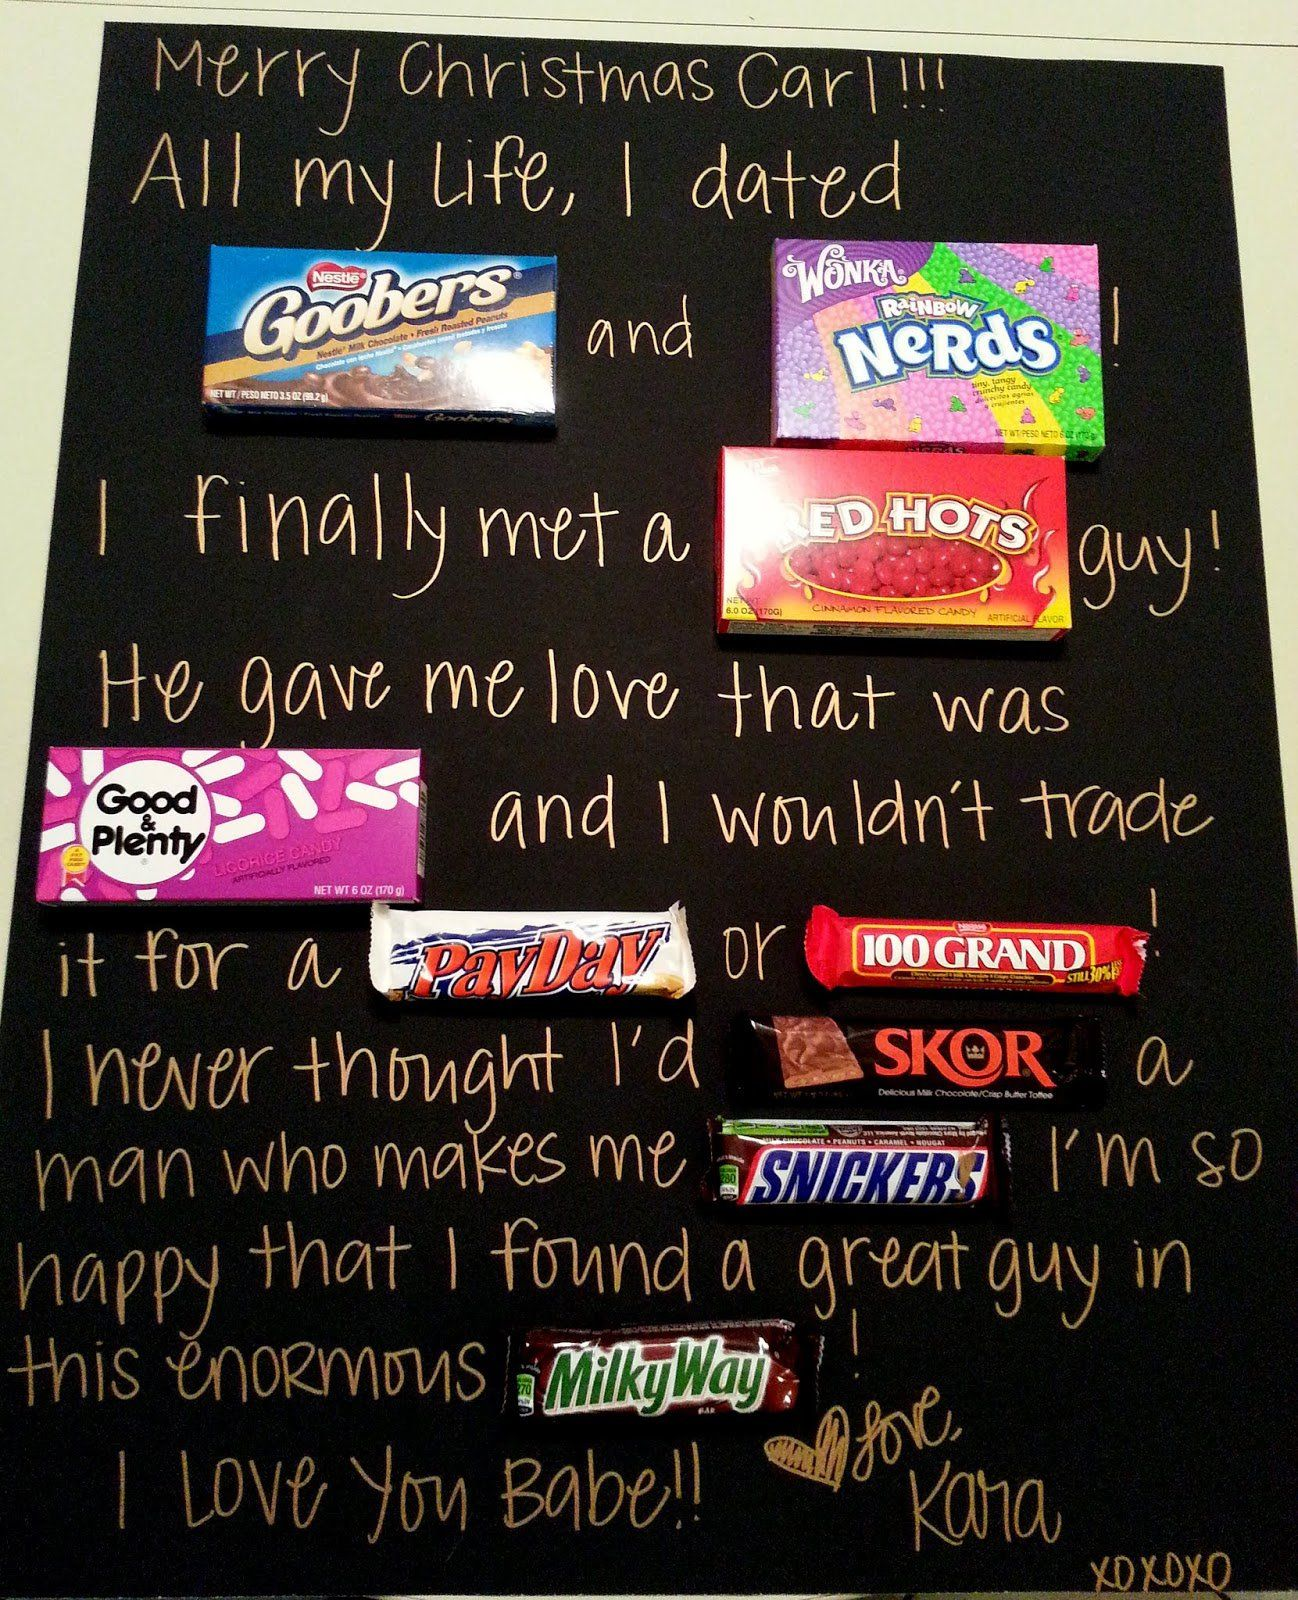 One Month Before Wedding Quotes: One Month Anniversary Quotes For Boyfriend With Candy